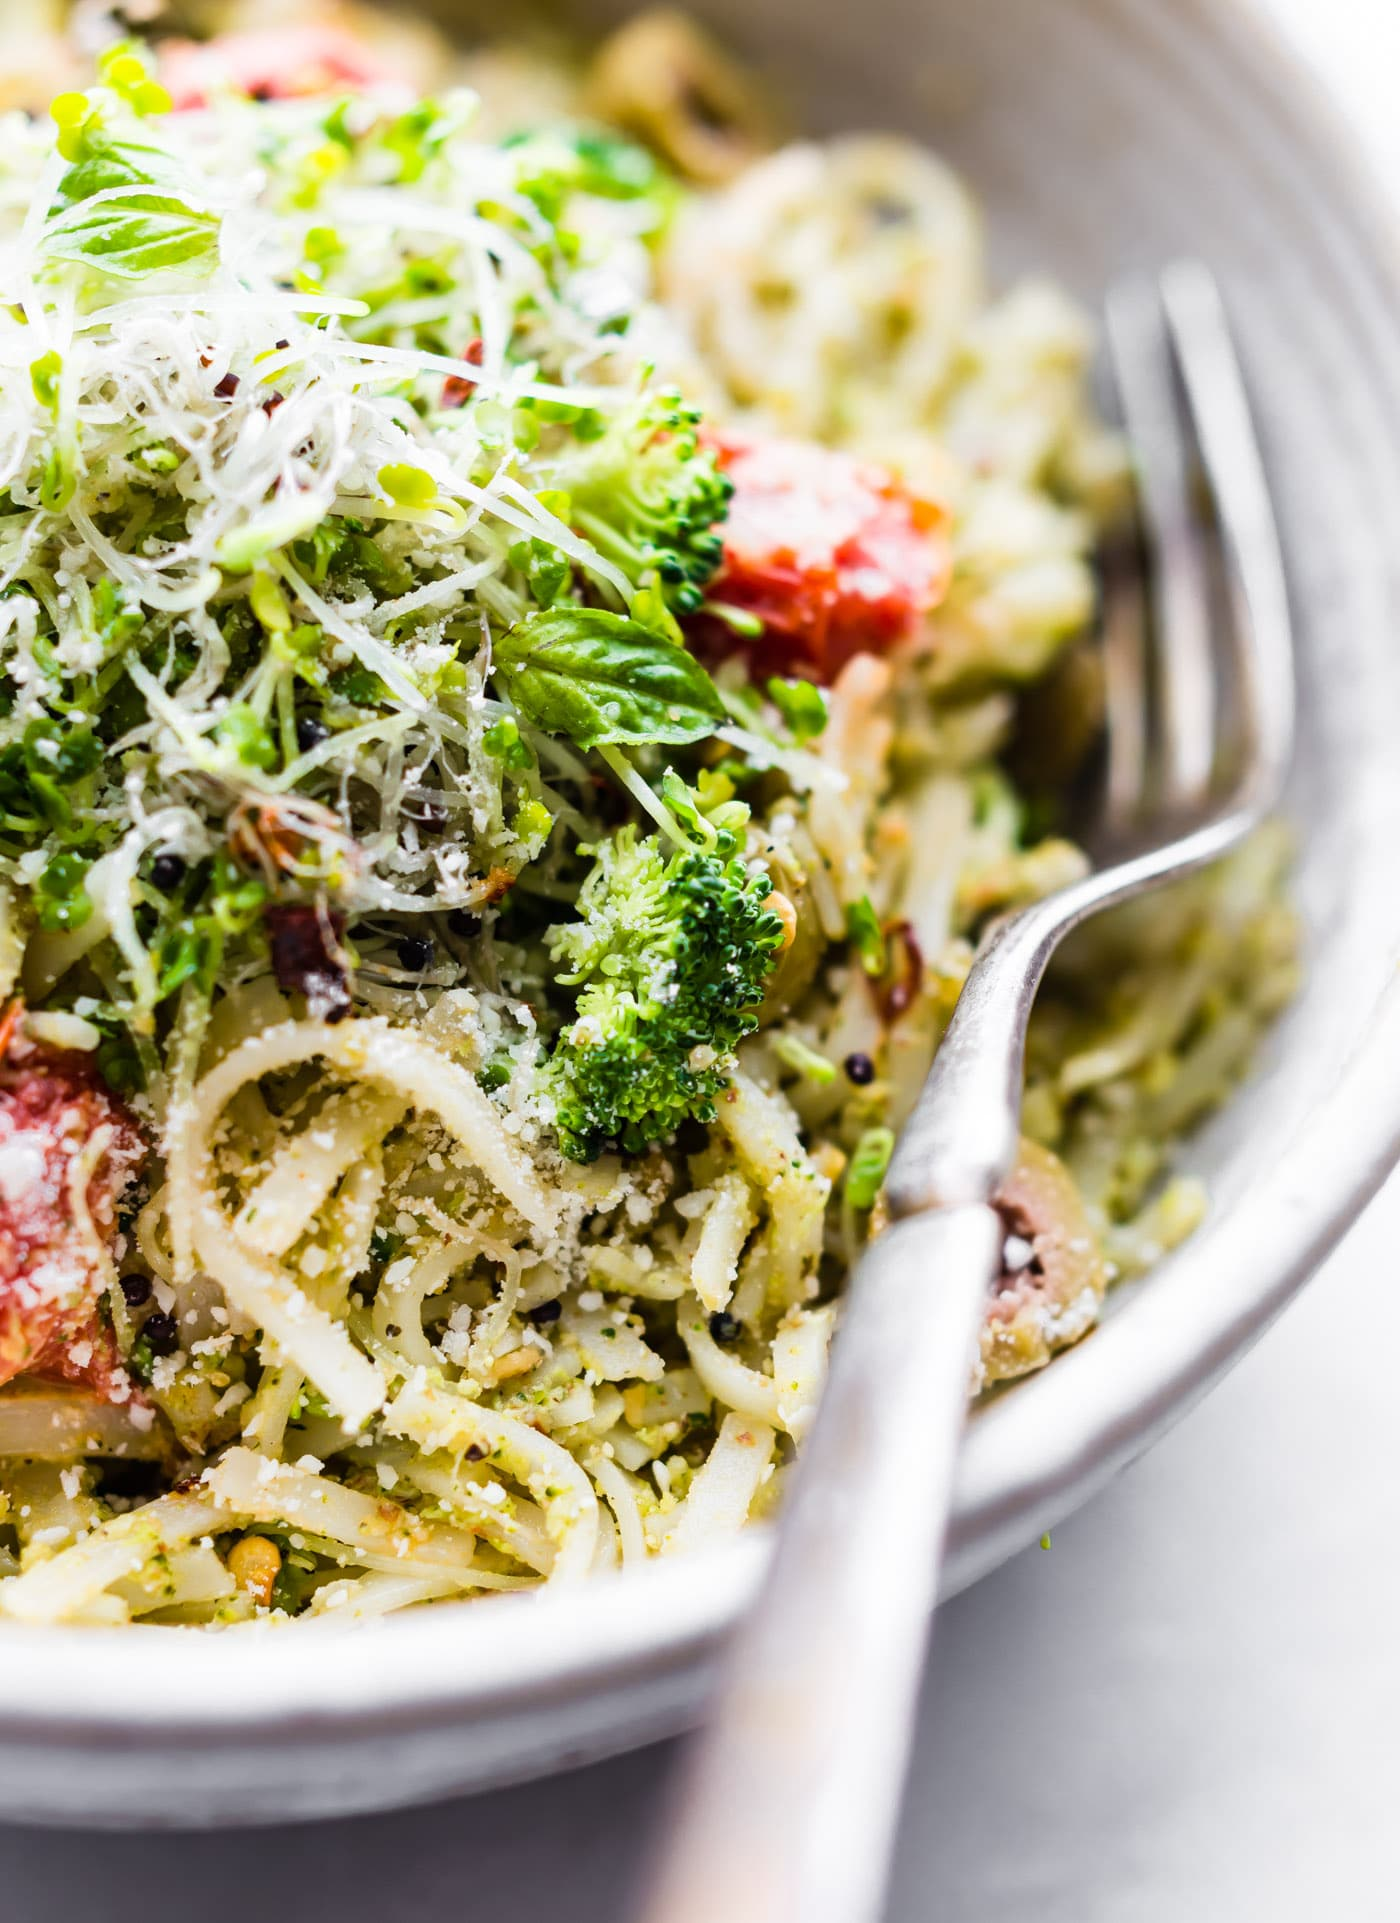 This gluten free Peppery Broccoli Arugula Pesto Pasta is gonna rock your world! A pesto pasta with broccoli and arugula and packed with nutrition and flavor! An easy pasta dinner for a quick weeknight dinner or healthy lunch! Ready in under 30 minutes and vegan friendly option. www.cottercrunch.com